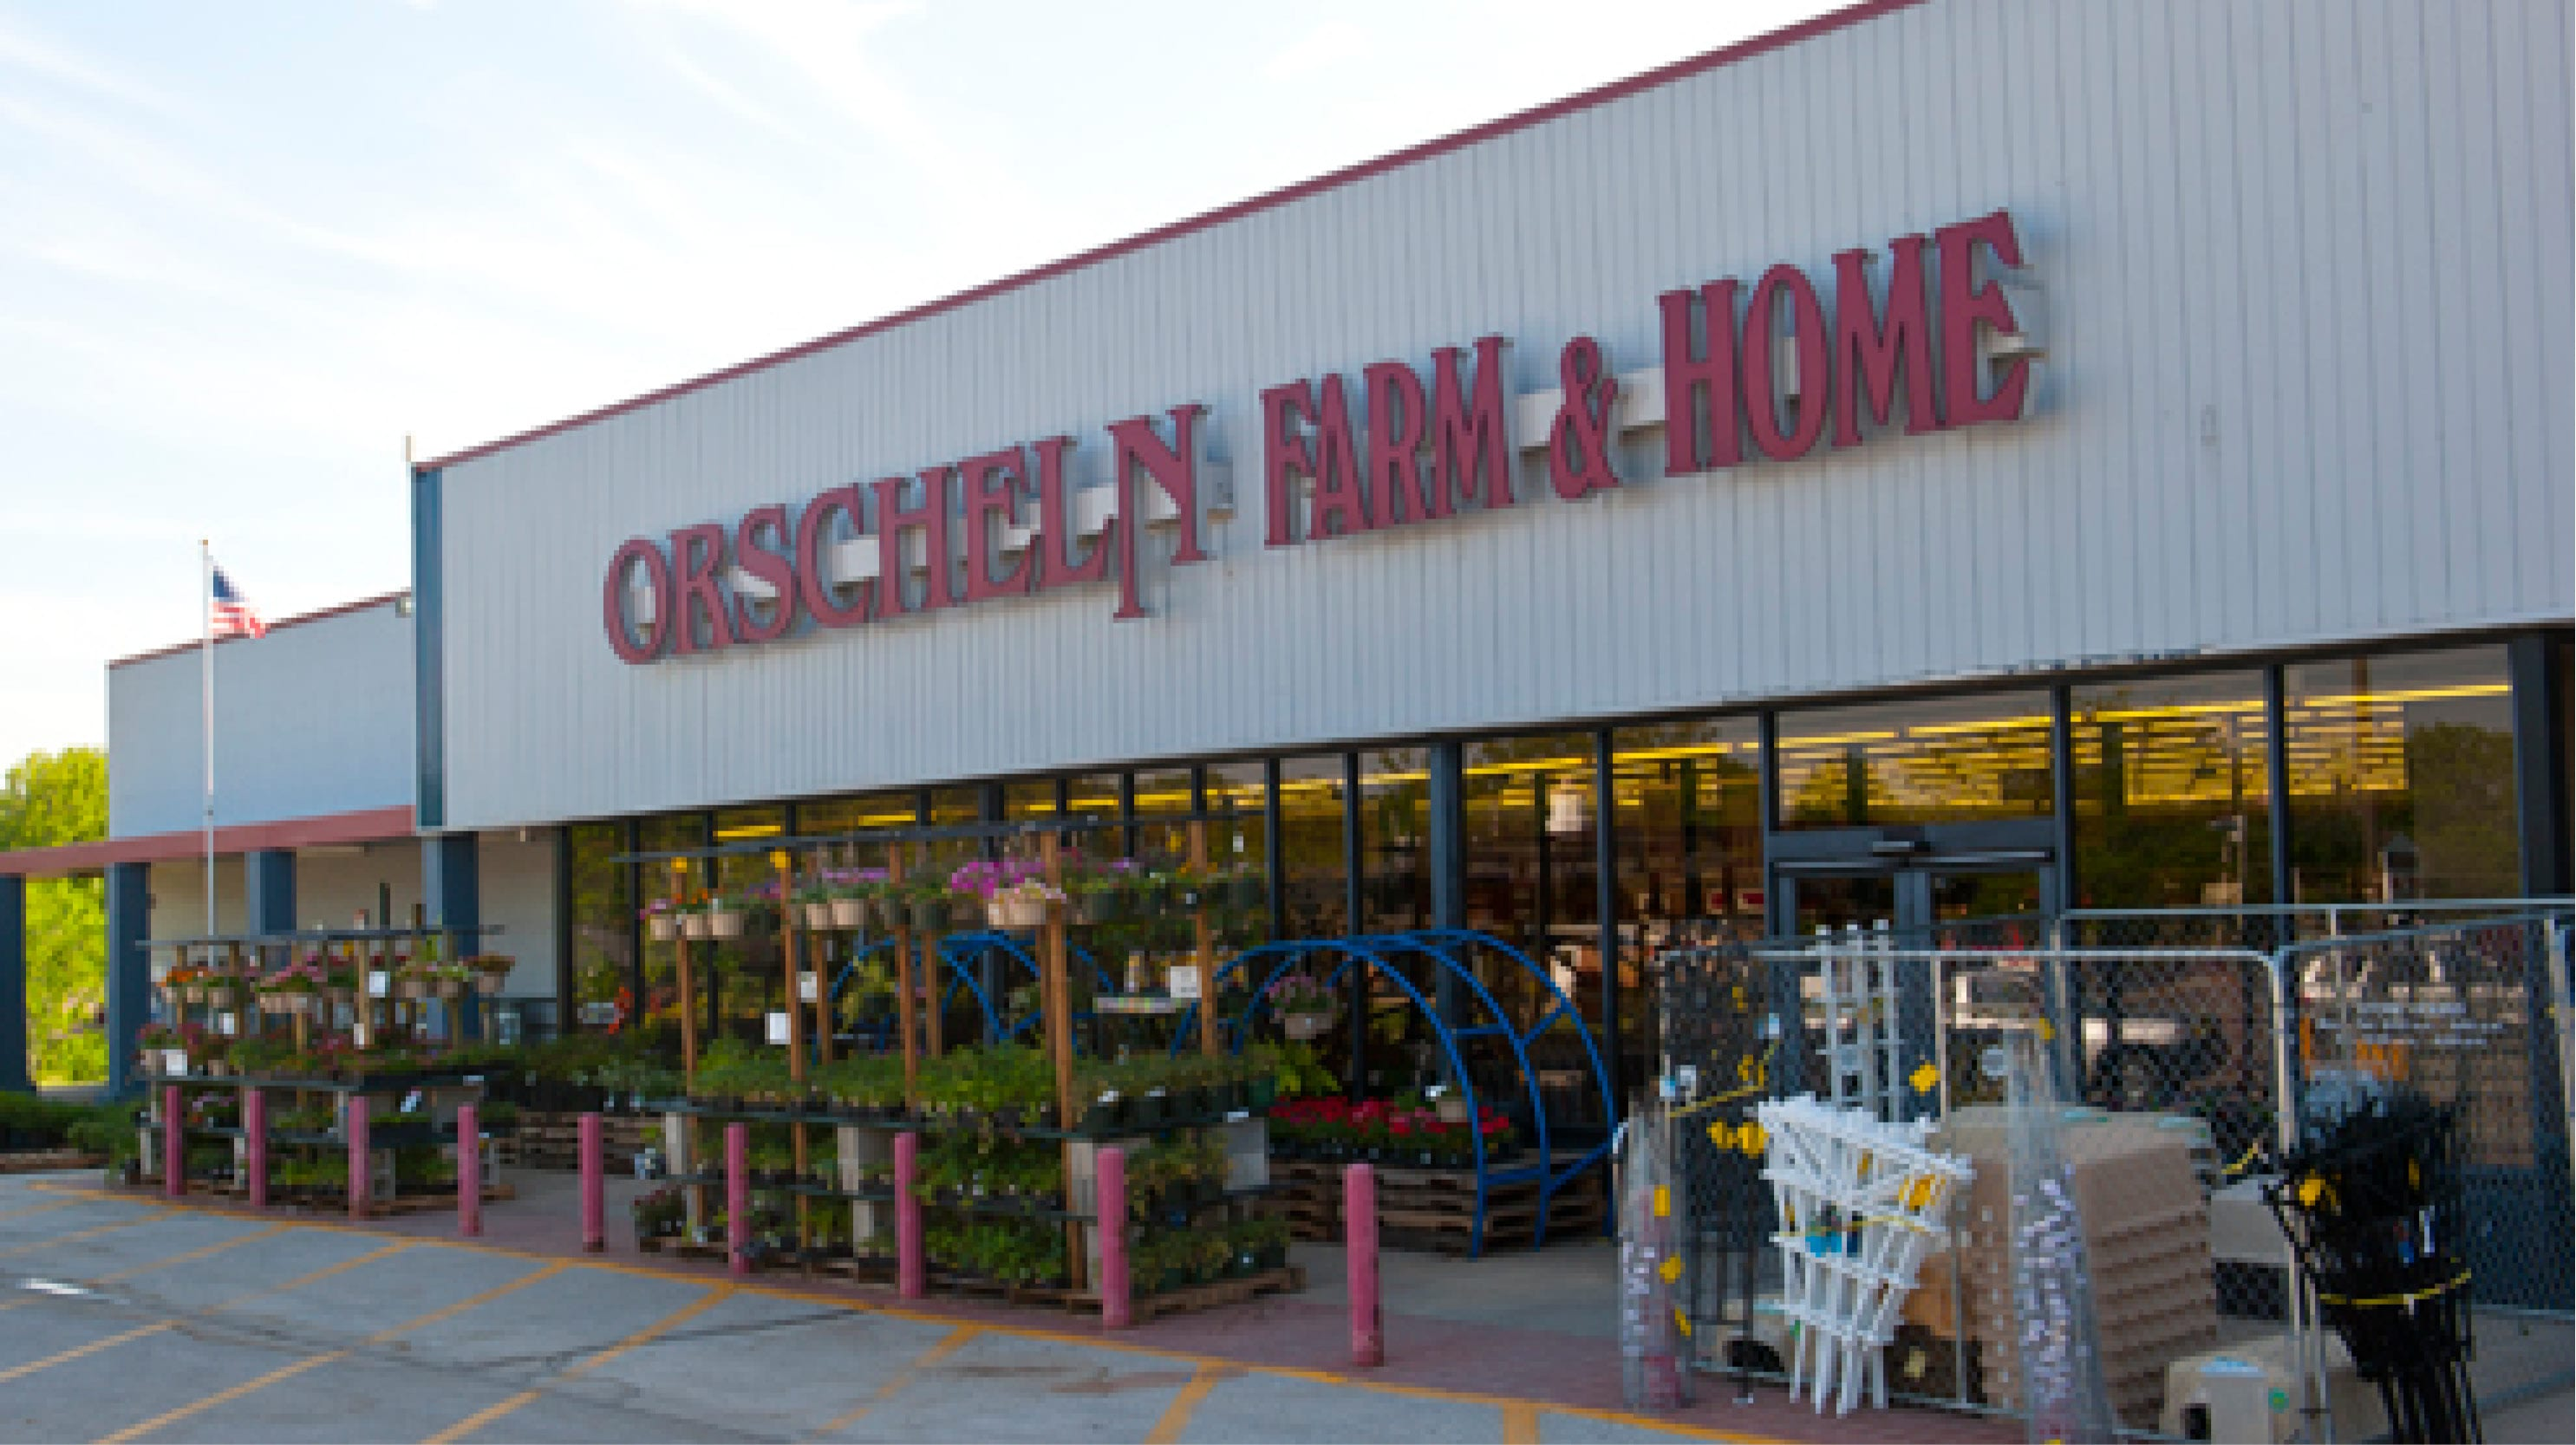 Front view of Orscheln Farm & Home Store in Boonville, Missouri 65233